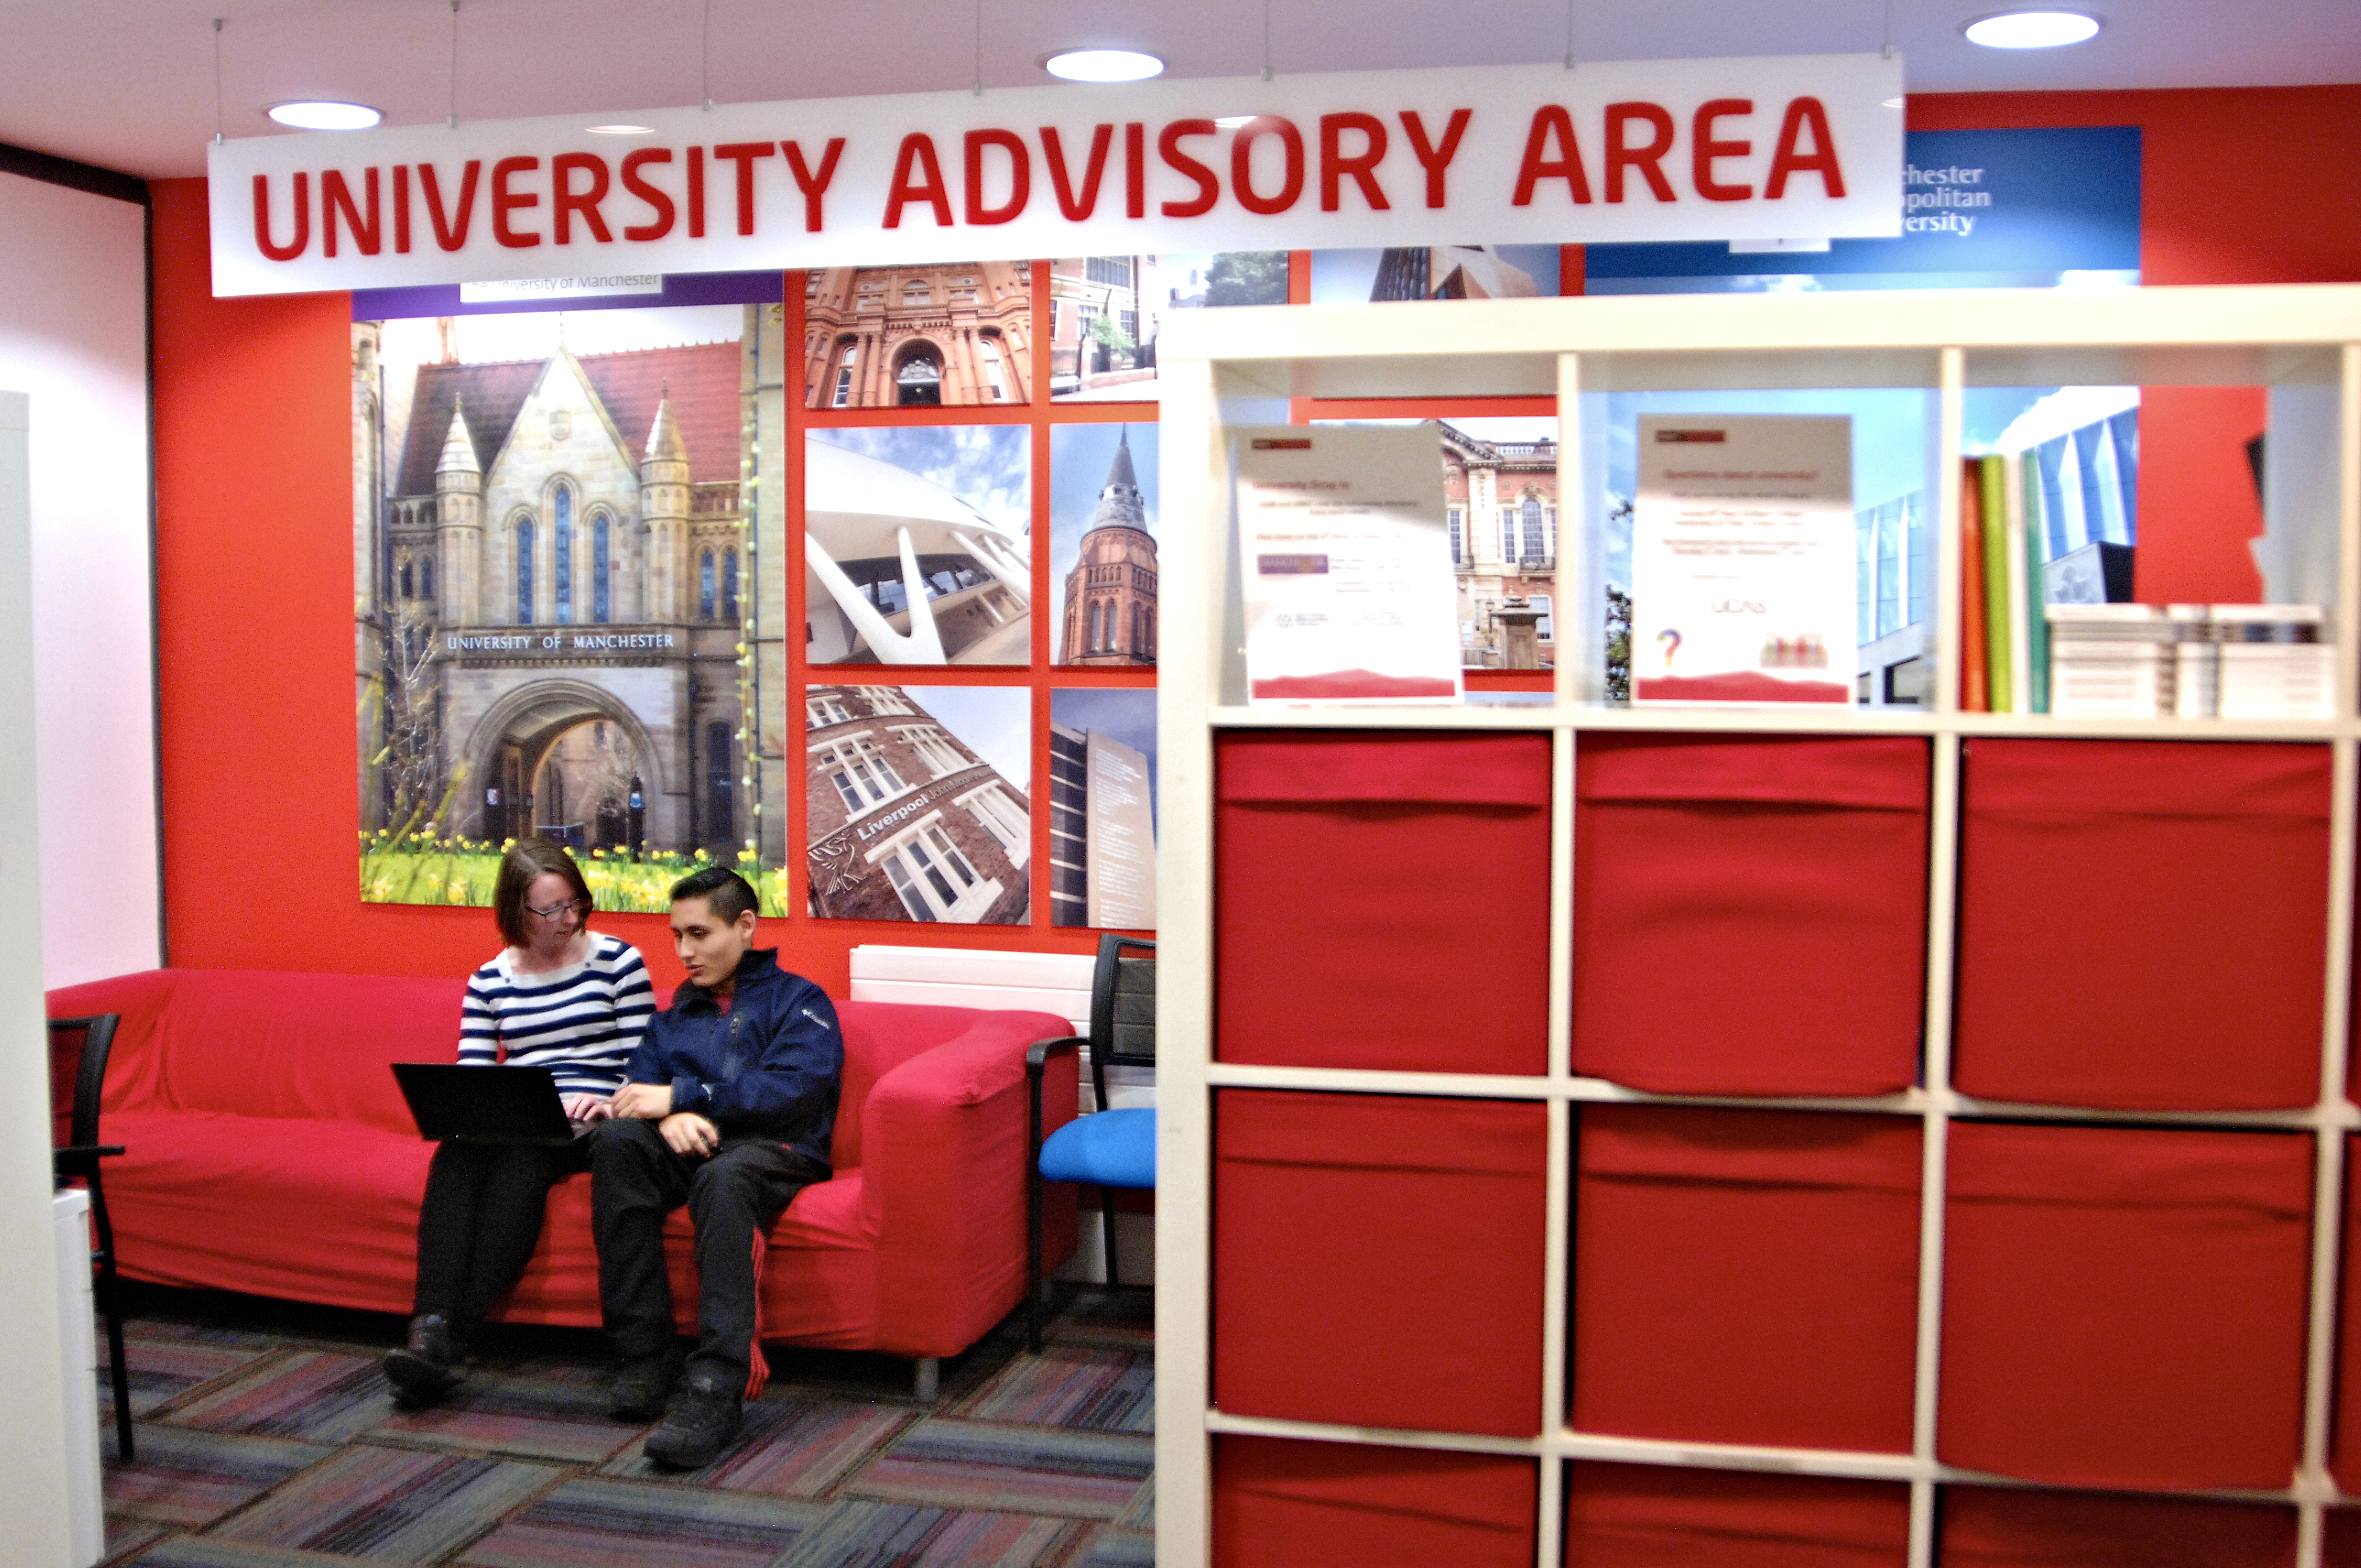 Student and staff at the university advisory area